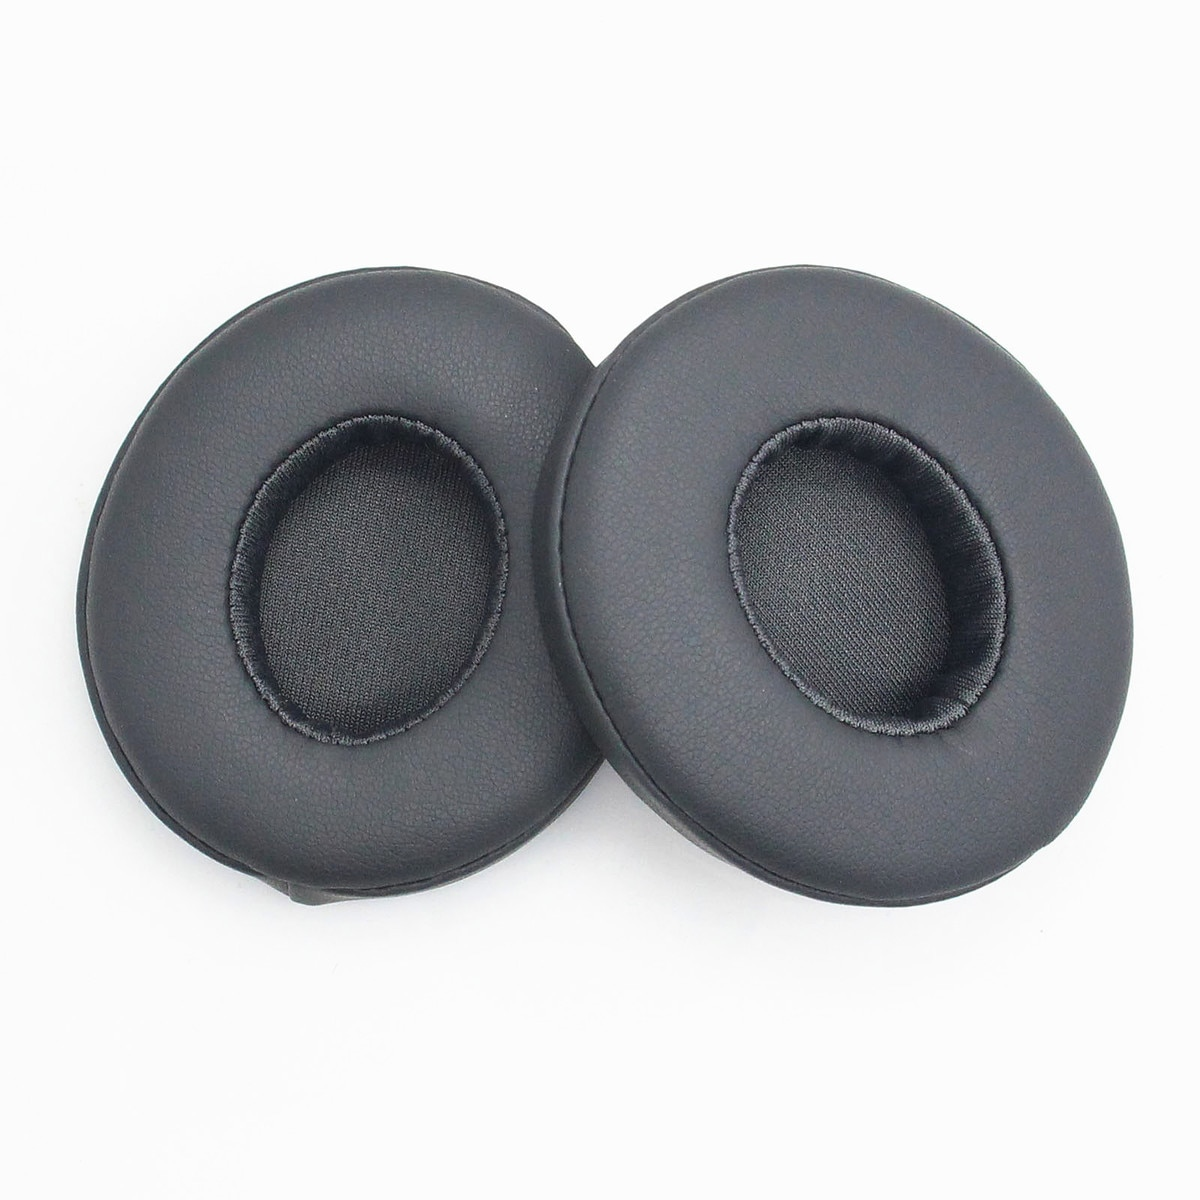 Replacement Soft Foam Ear Pads Cushions for Solo 2 & 3 Wireless On Ear Headphones Earpad Gray high quality enlarge